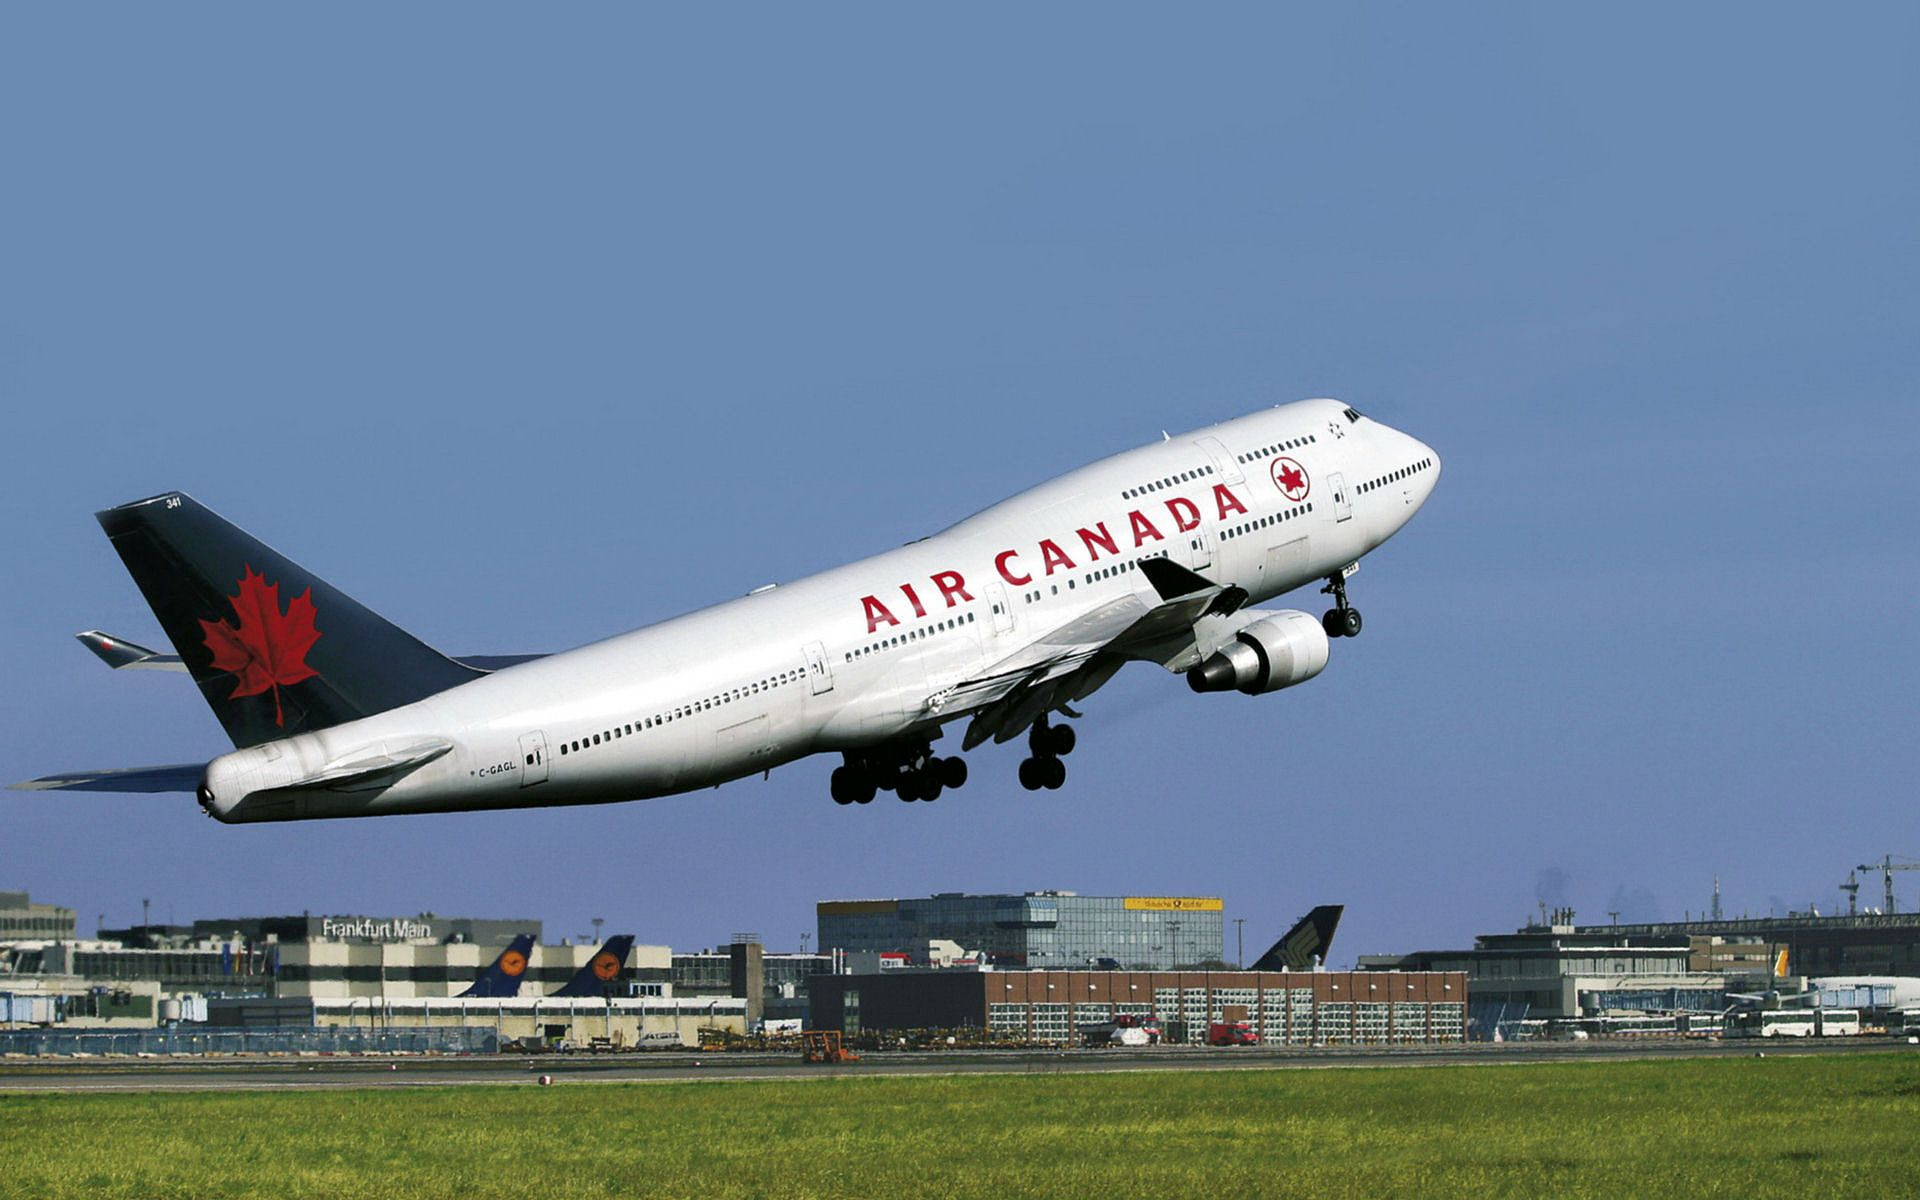 Air Canada Air Canada 747 Computer Wallpapers Desktop Backgrounds 1920x1200 Id Aircraft Boeing Boeing 747